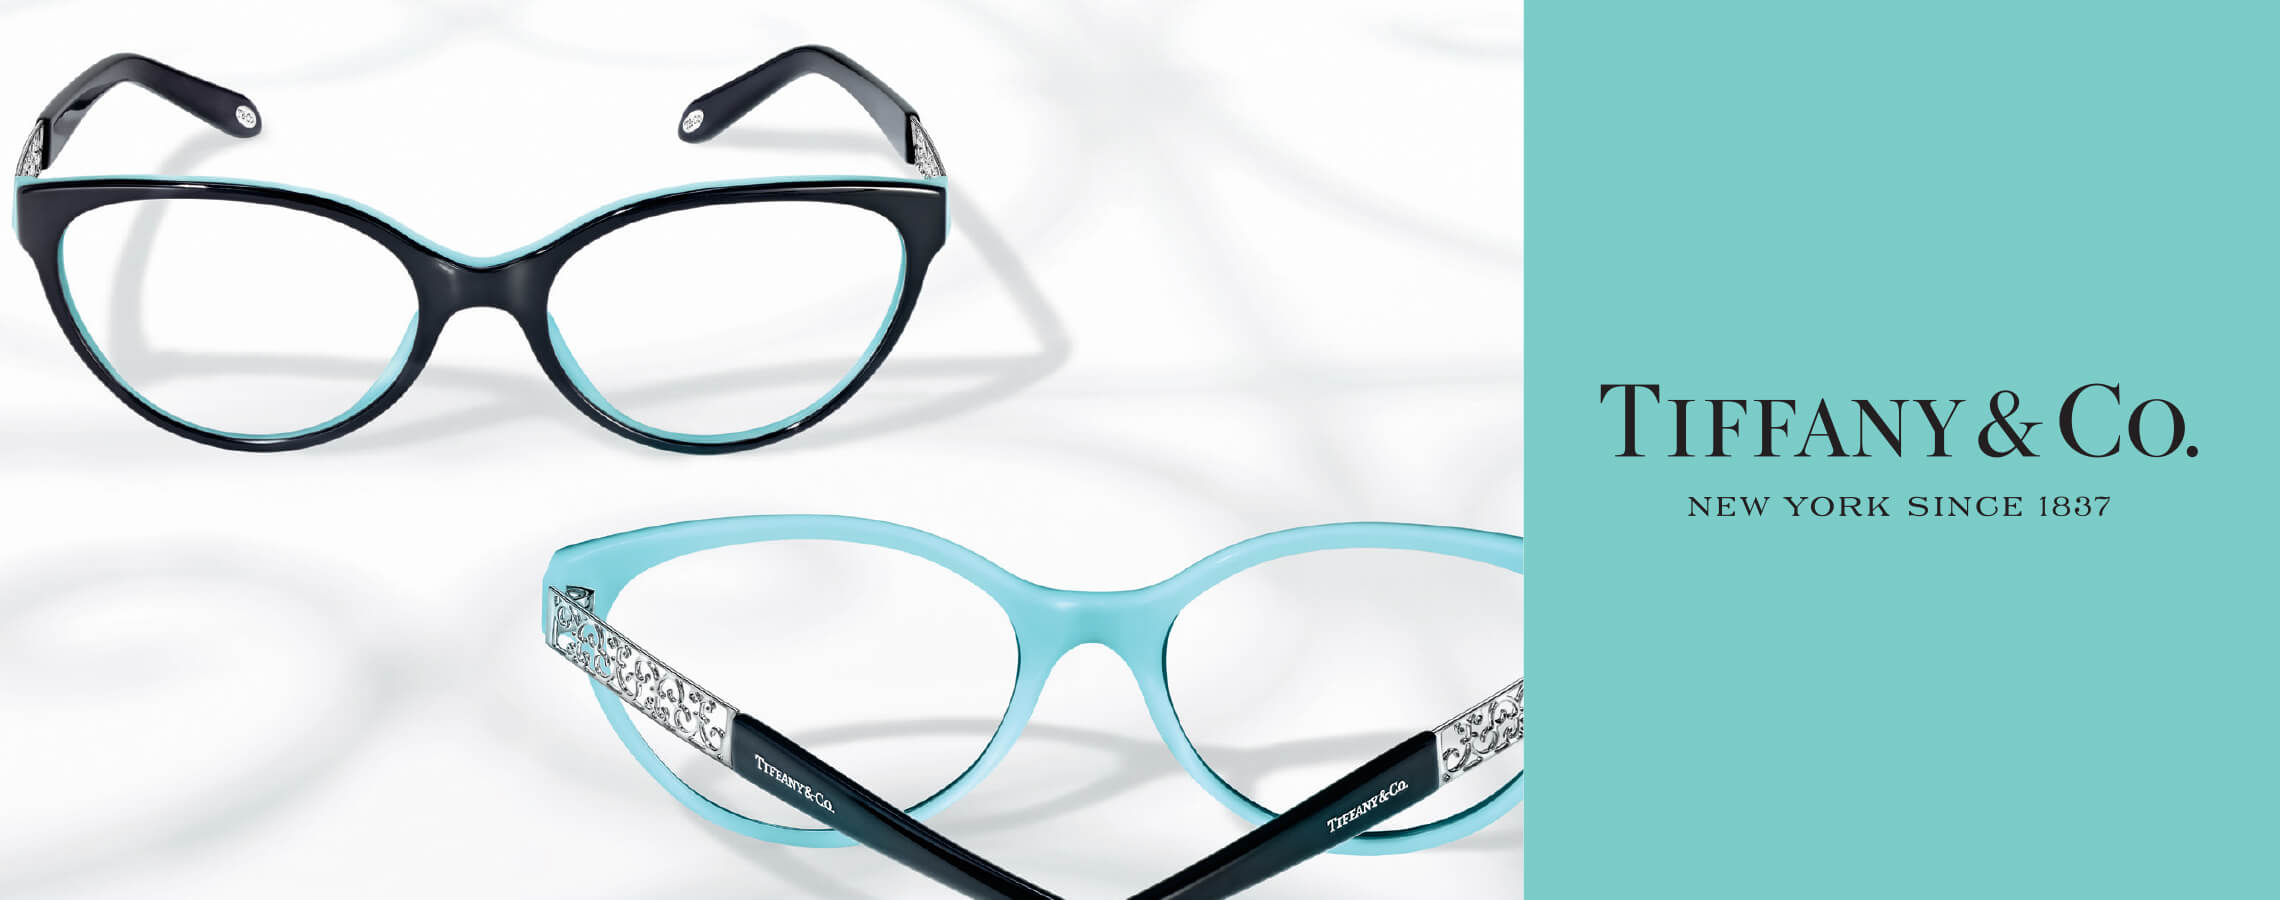 Tiffany Optical